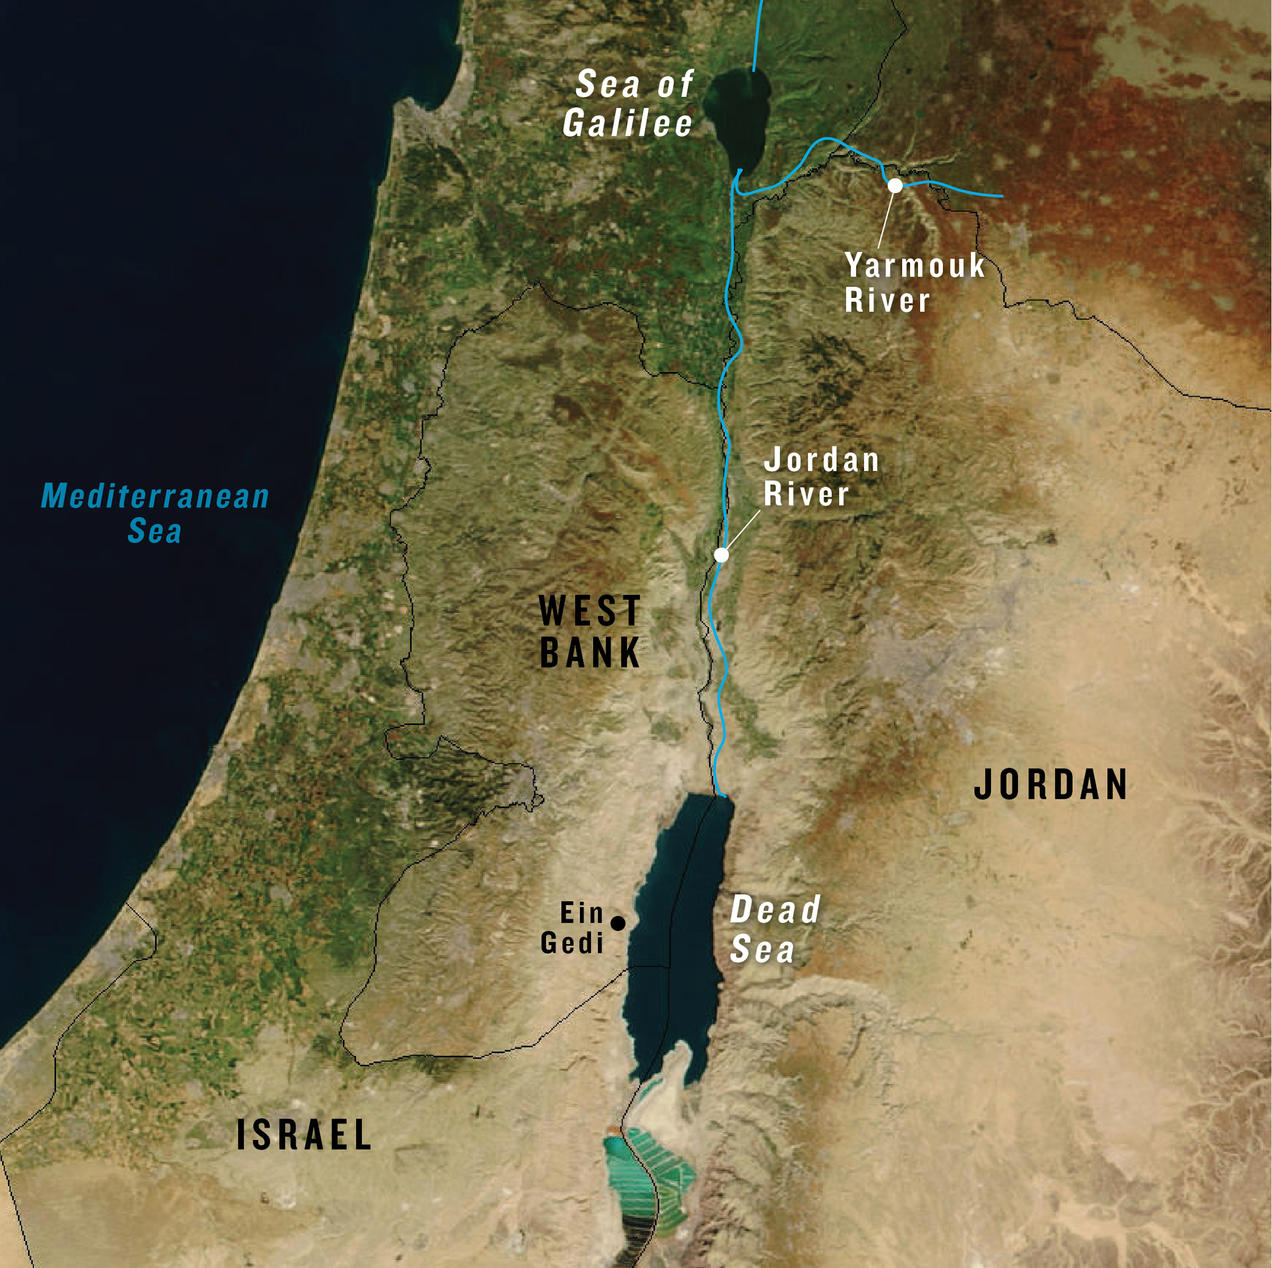 The Dead Sea Map Could Water from the Red Sea Help Revive the Dead Sea? | NRDC The Dead Sea Map